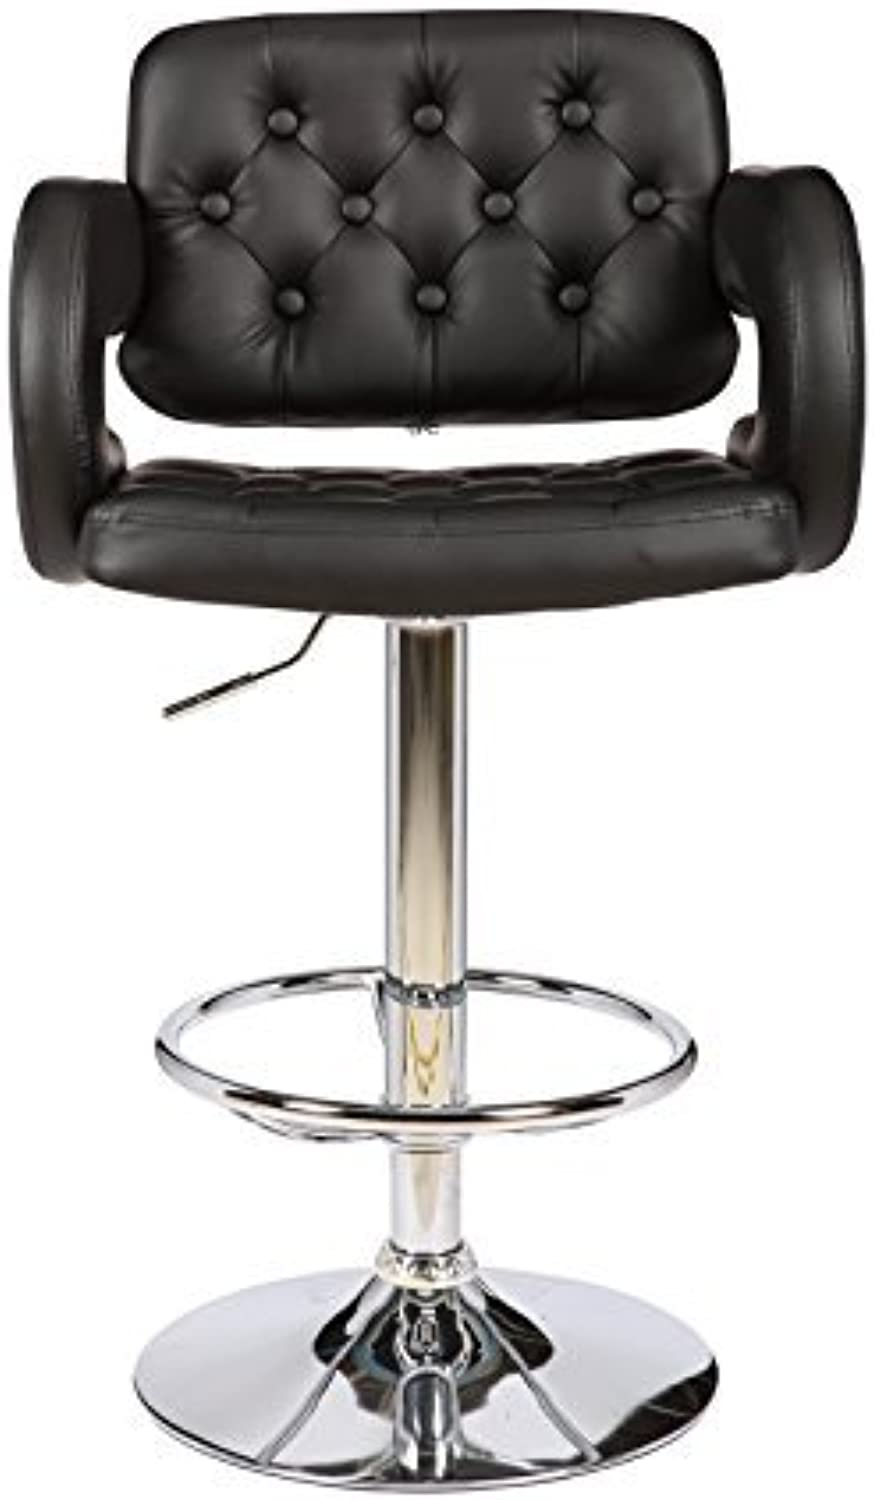 ViscoLogic Series WESTMINSTER 22 inch Wide, Height Adjustable Leatherette 360 Swivel 24 to 33 inch Bar Stool with Button Tufted Quilted Upholstered High Backrest and High Armrests, Chrome Pole & Wide Base, Hard Plastic Floor predection Installed in Bar St